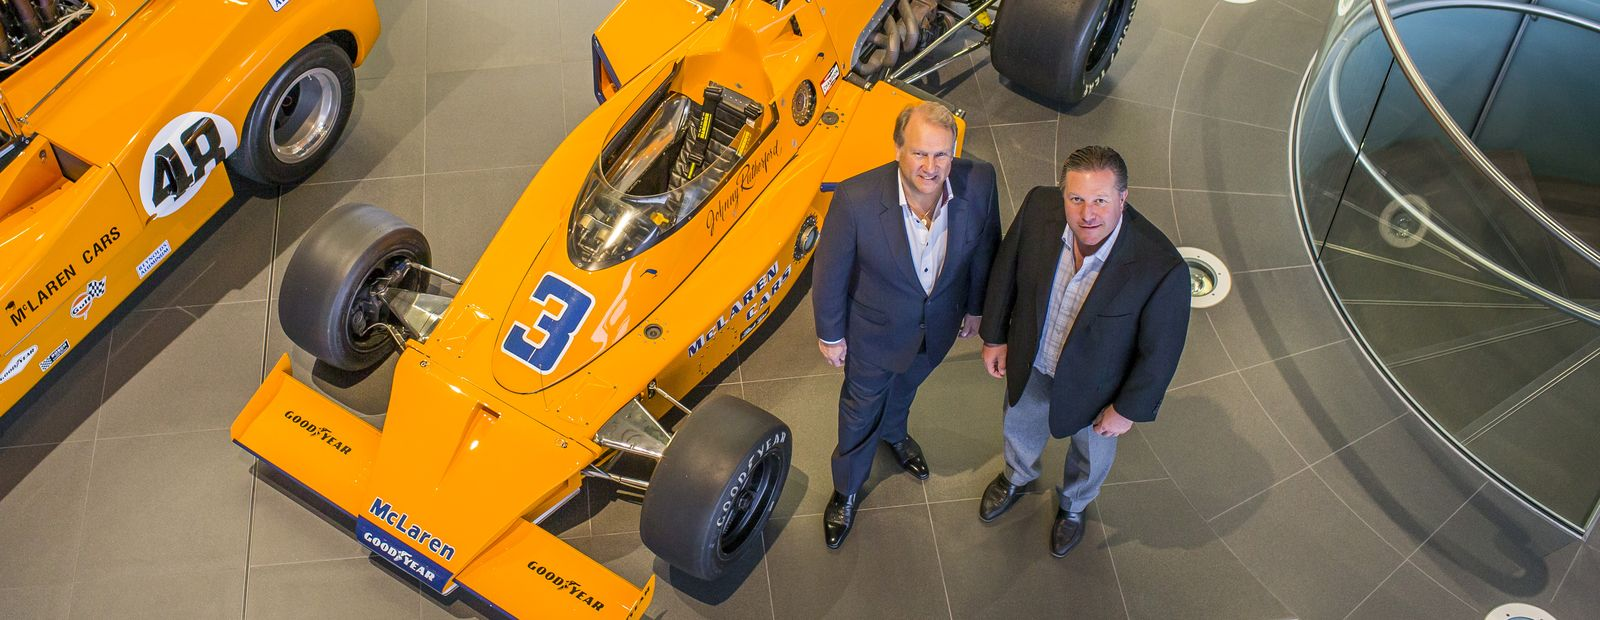 McLaren appoints Bob Fernley as President, IndyCar